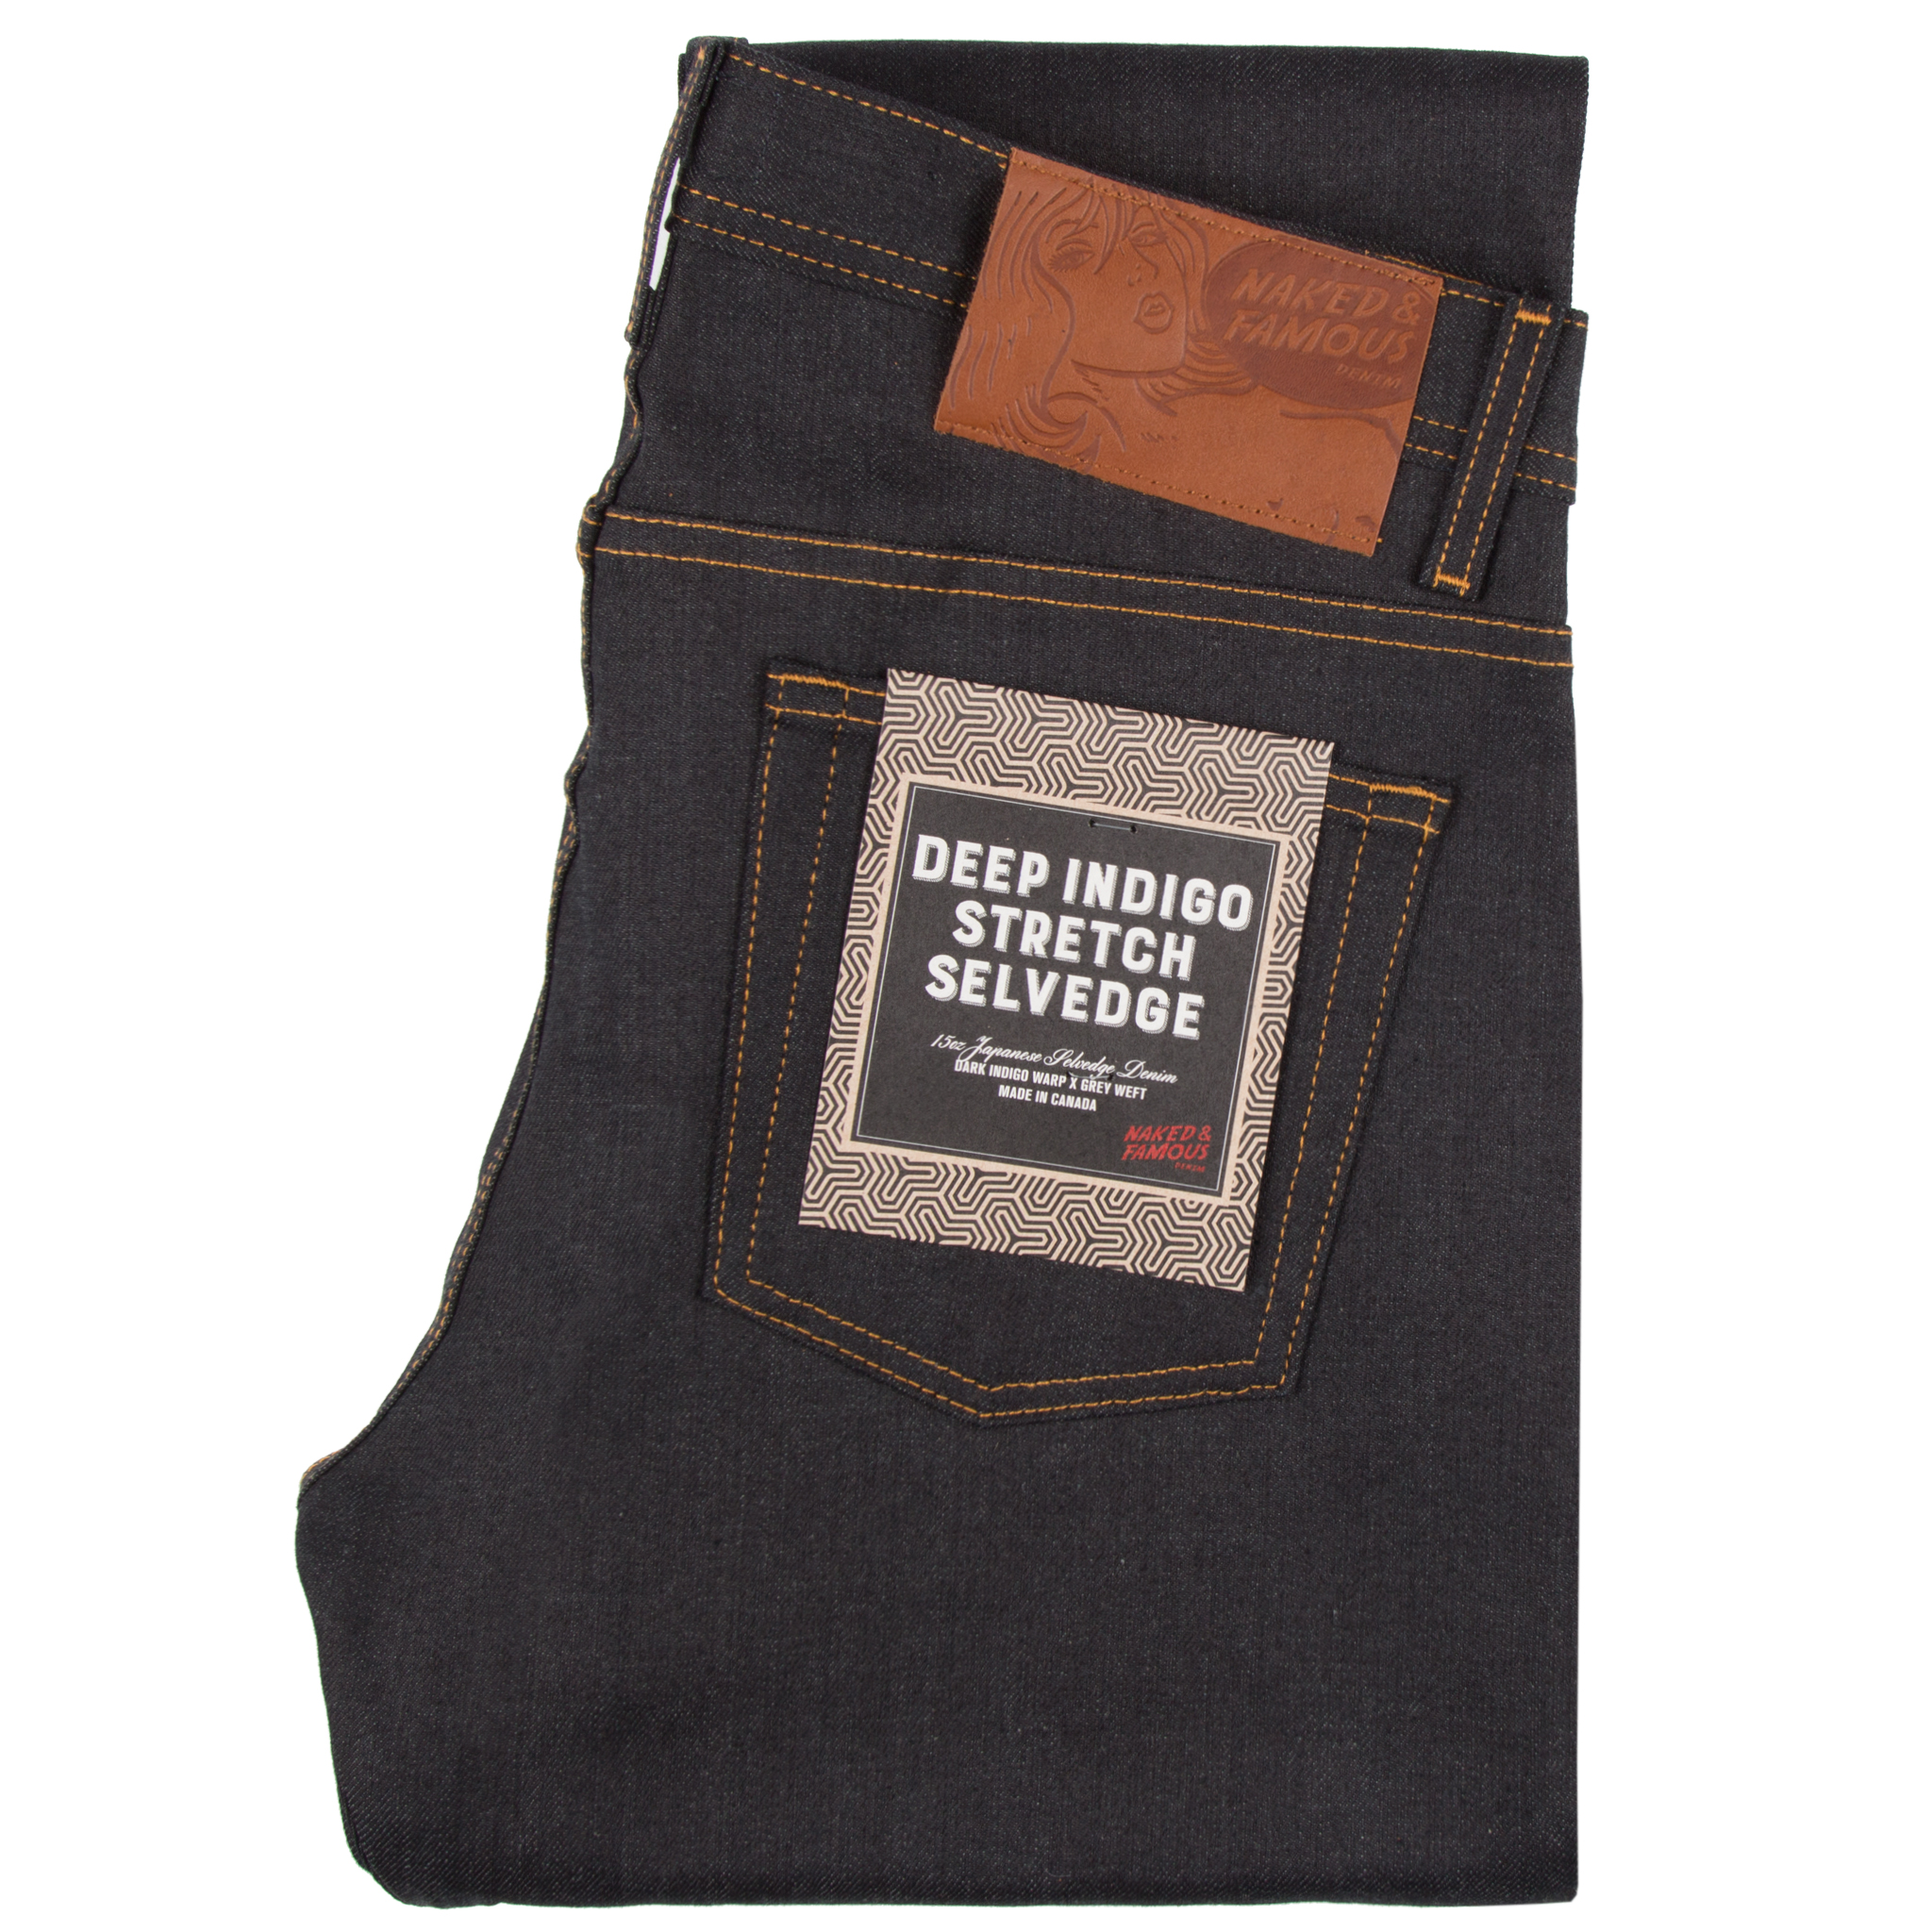 Deep Indigo Stretch Selvedge Jeans Folded